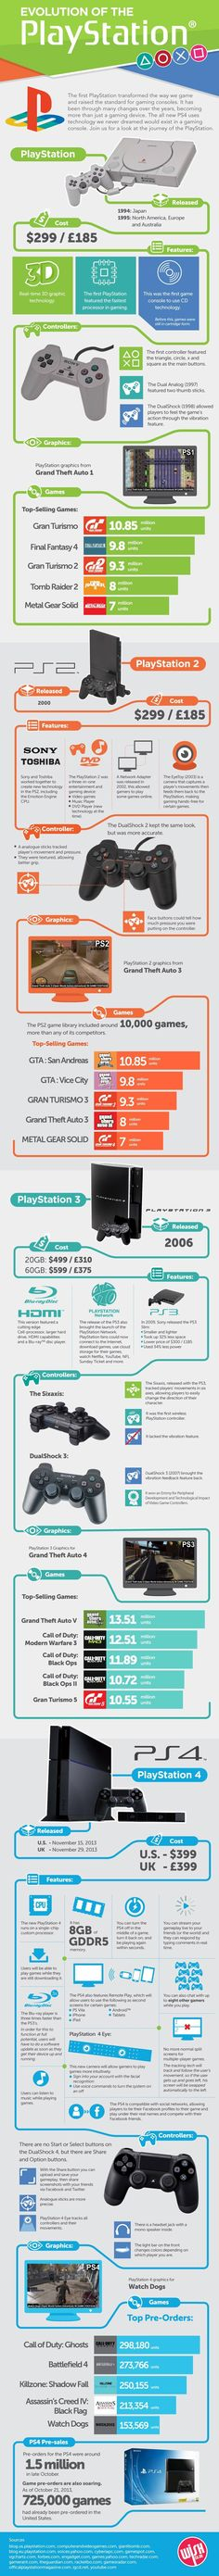 Evolution of the PlayStation Evolution of #PlayStation   #Infographic